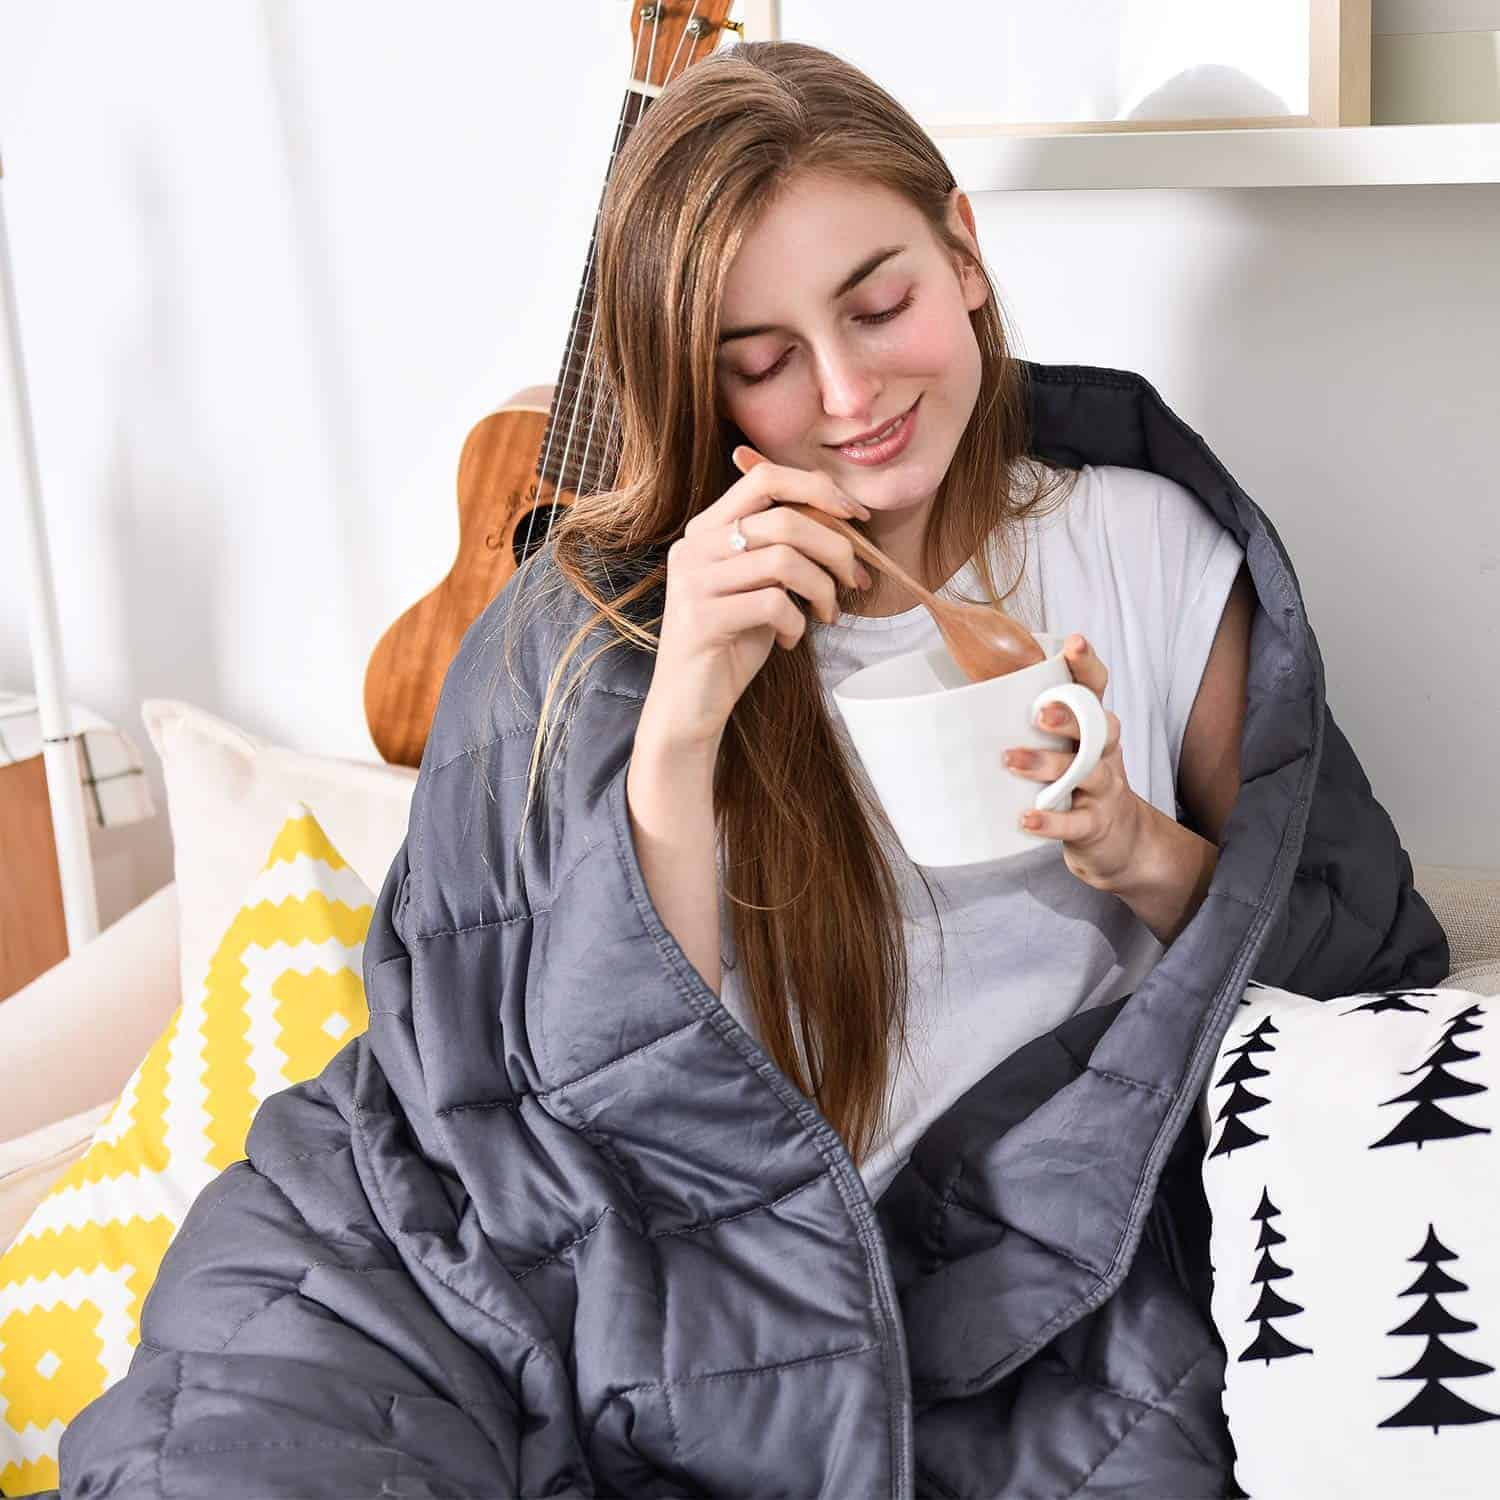 woman eating out of a bowl wrapped in a blanket